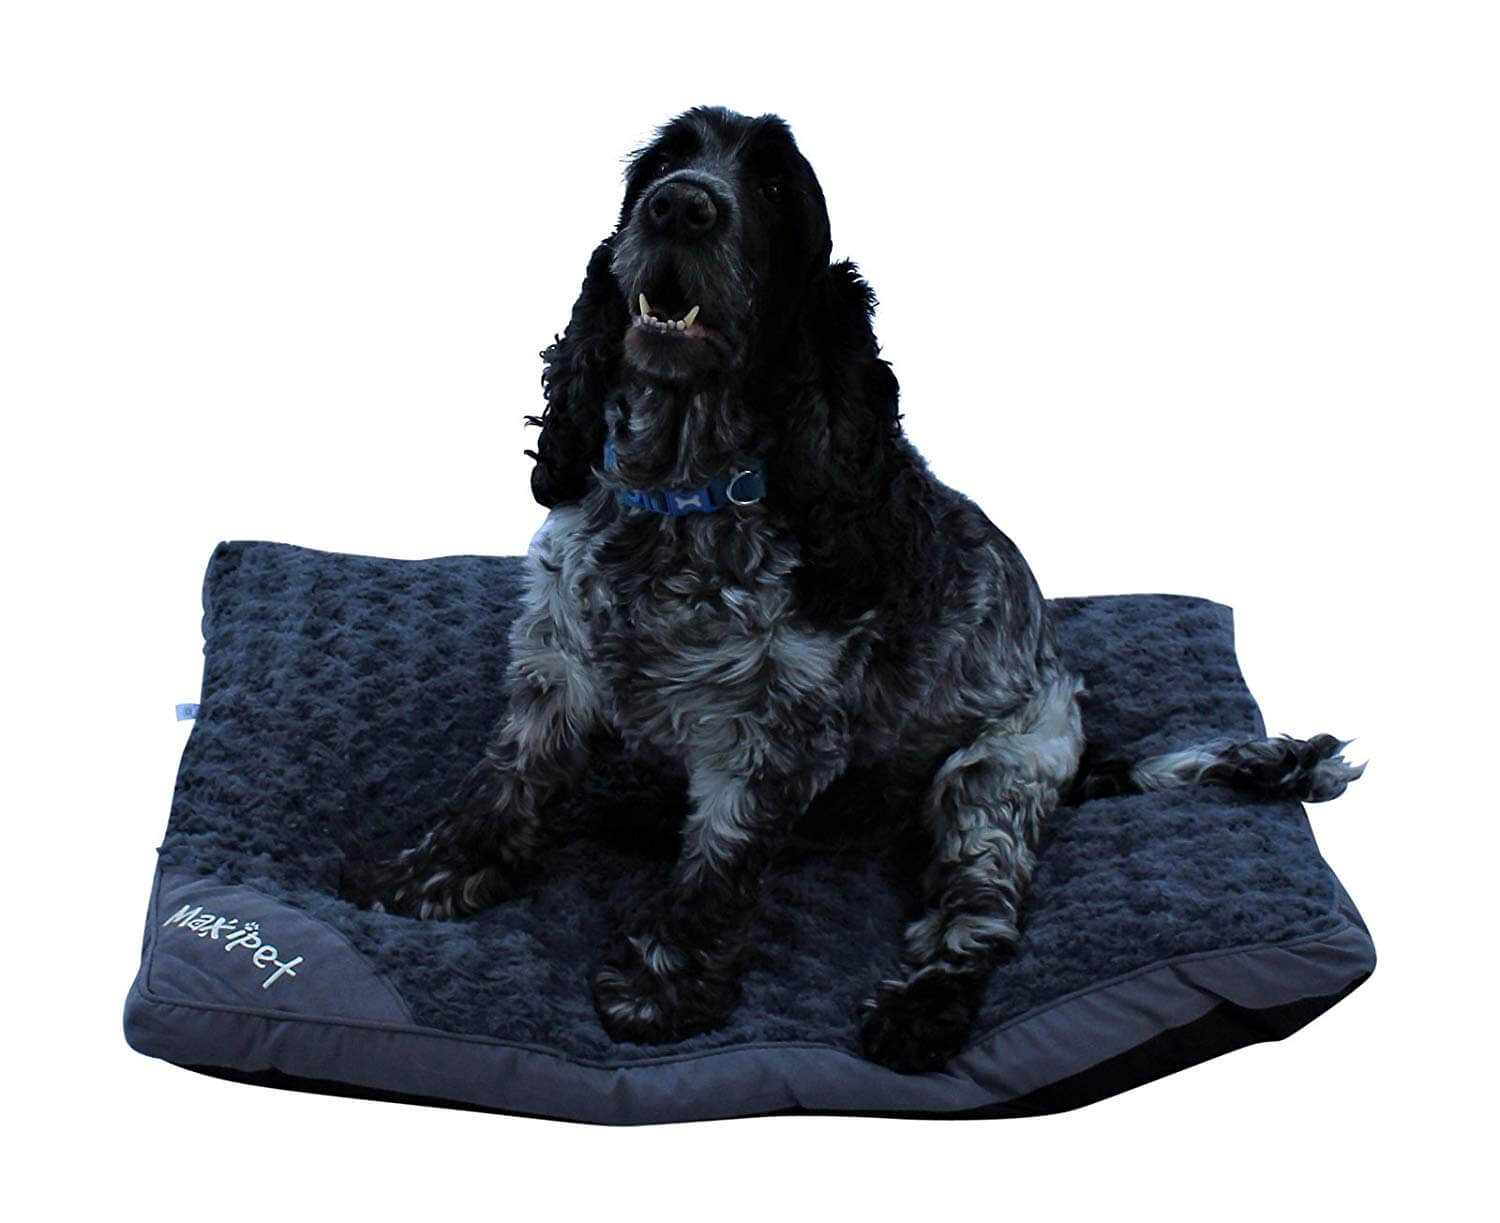 Home hut pillow dog bed